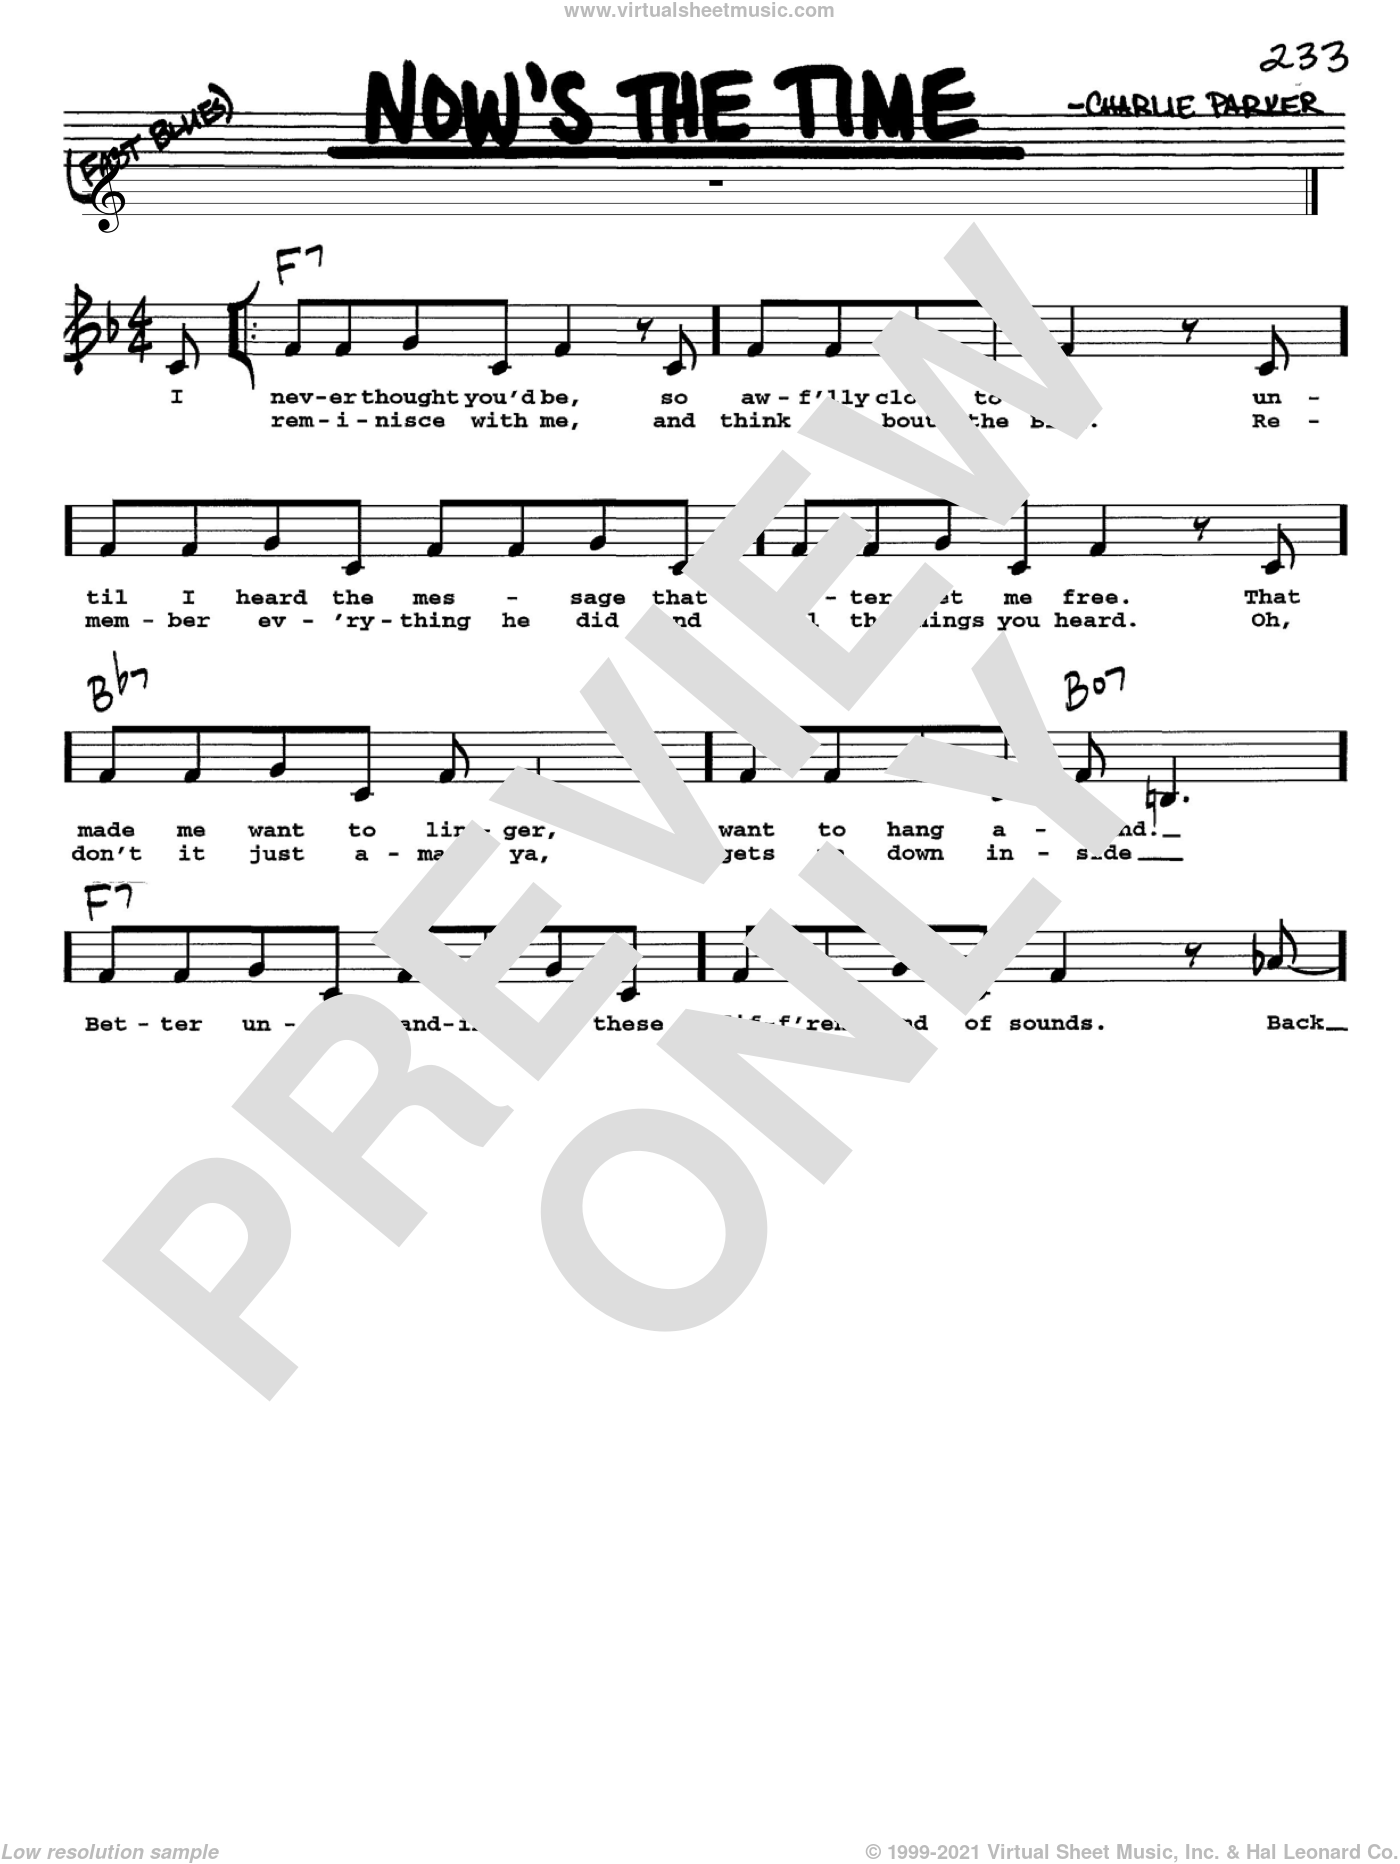 Now's The Time sheet music for voice and other instruments (Vocal Volume 1) by Charlie Parker. Score Image Preview.